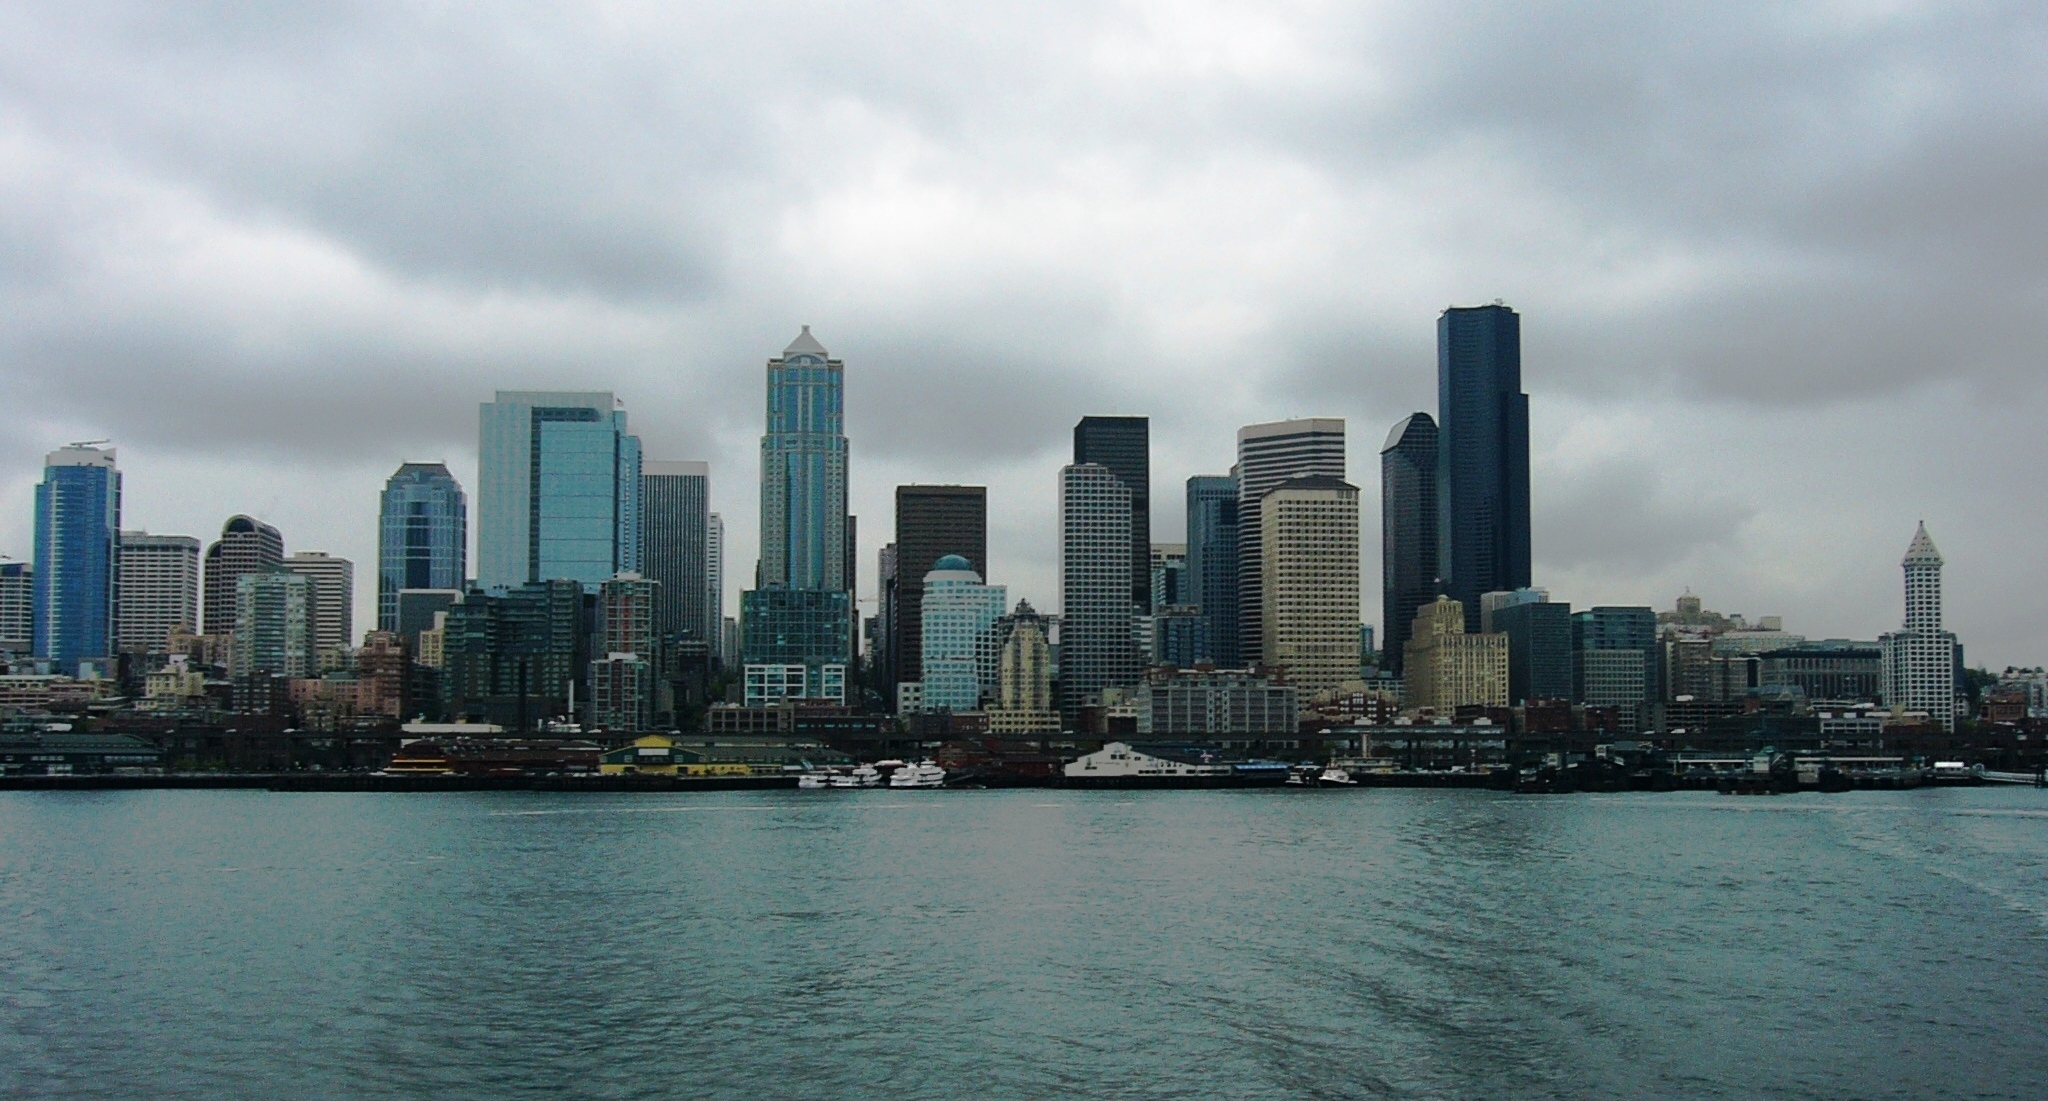 Four Points of Washington: Seattle skyline, Looking East